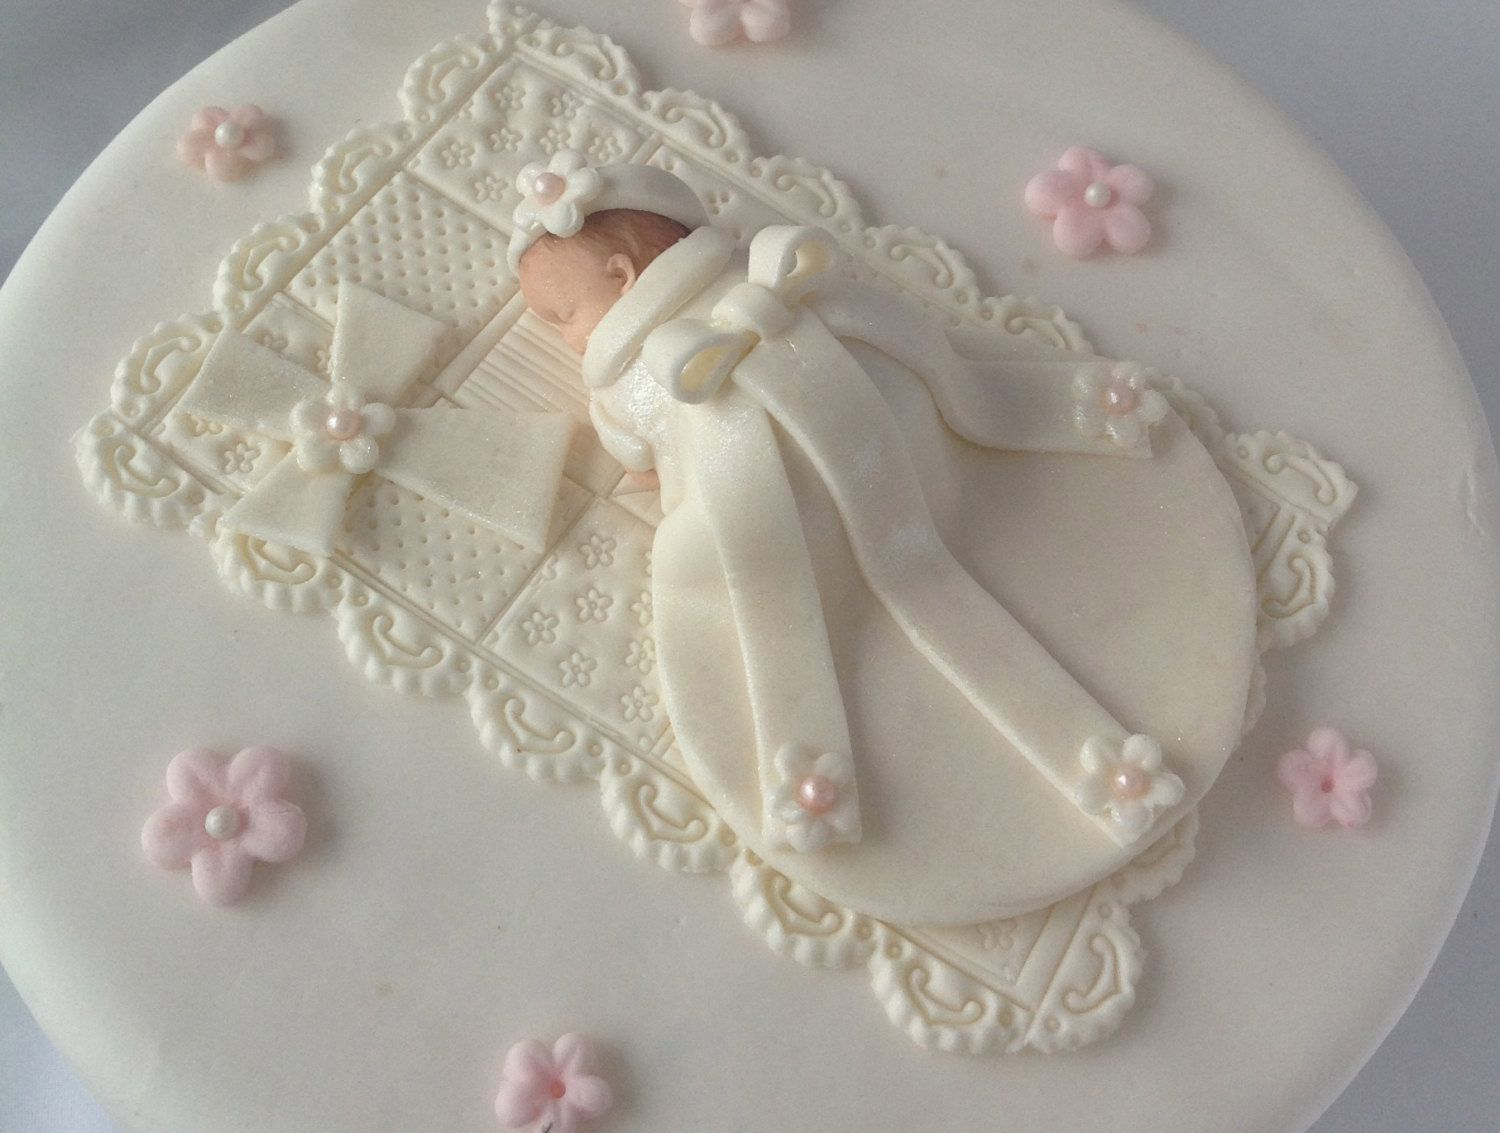 Sugar Paste Cake Decorating 17 Best Ideas About Edible Gum On Pinterest Fondant Cake Toppers